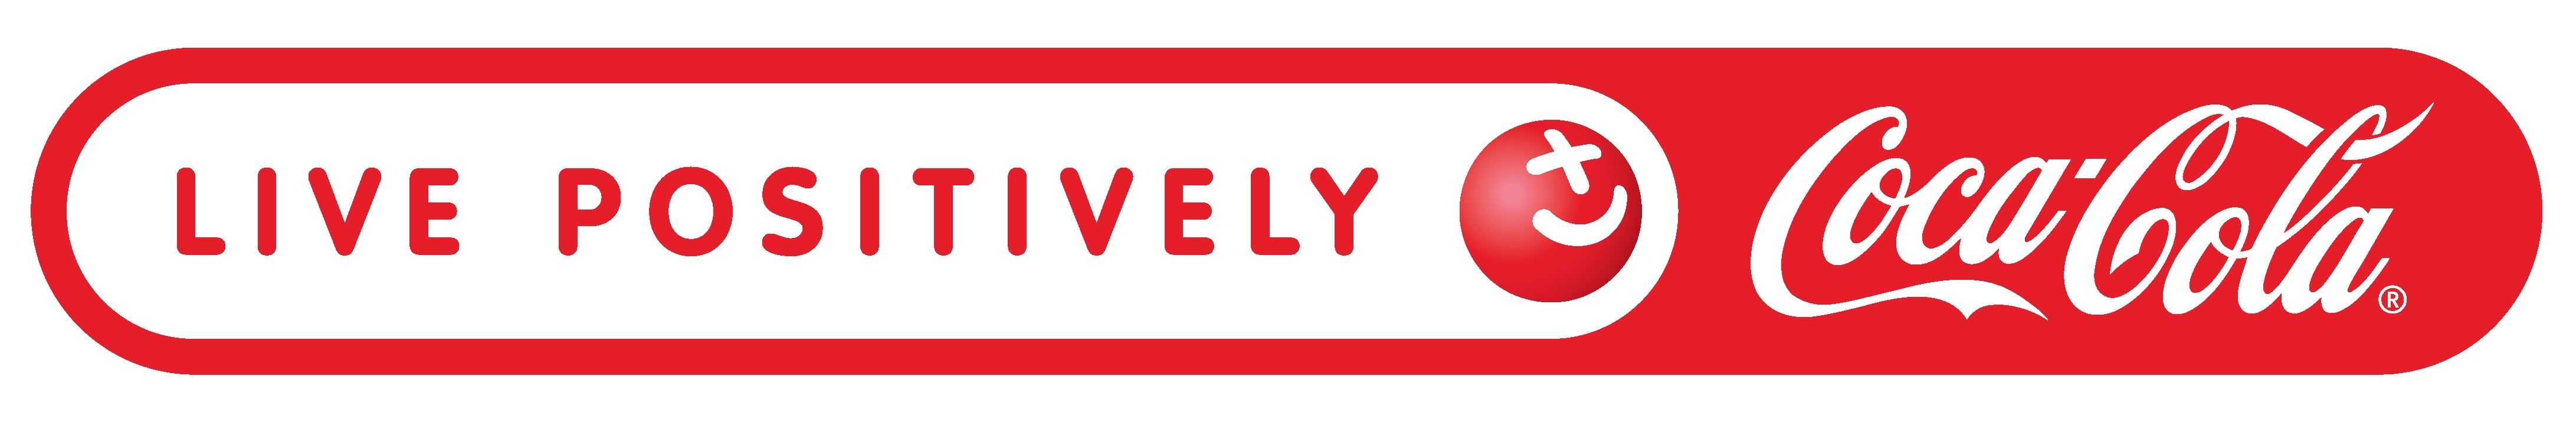 LivePositively logo